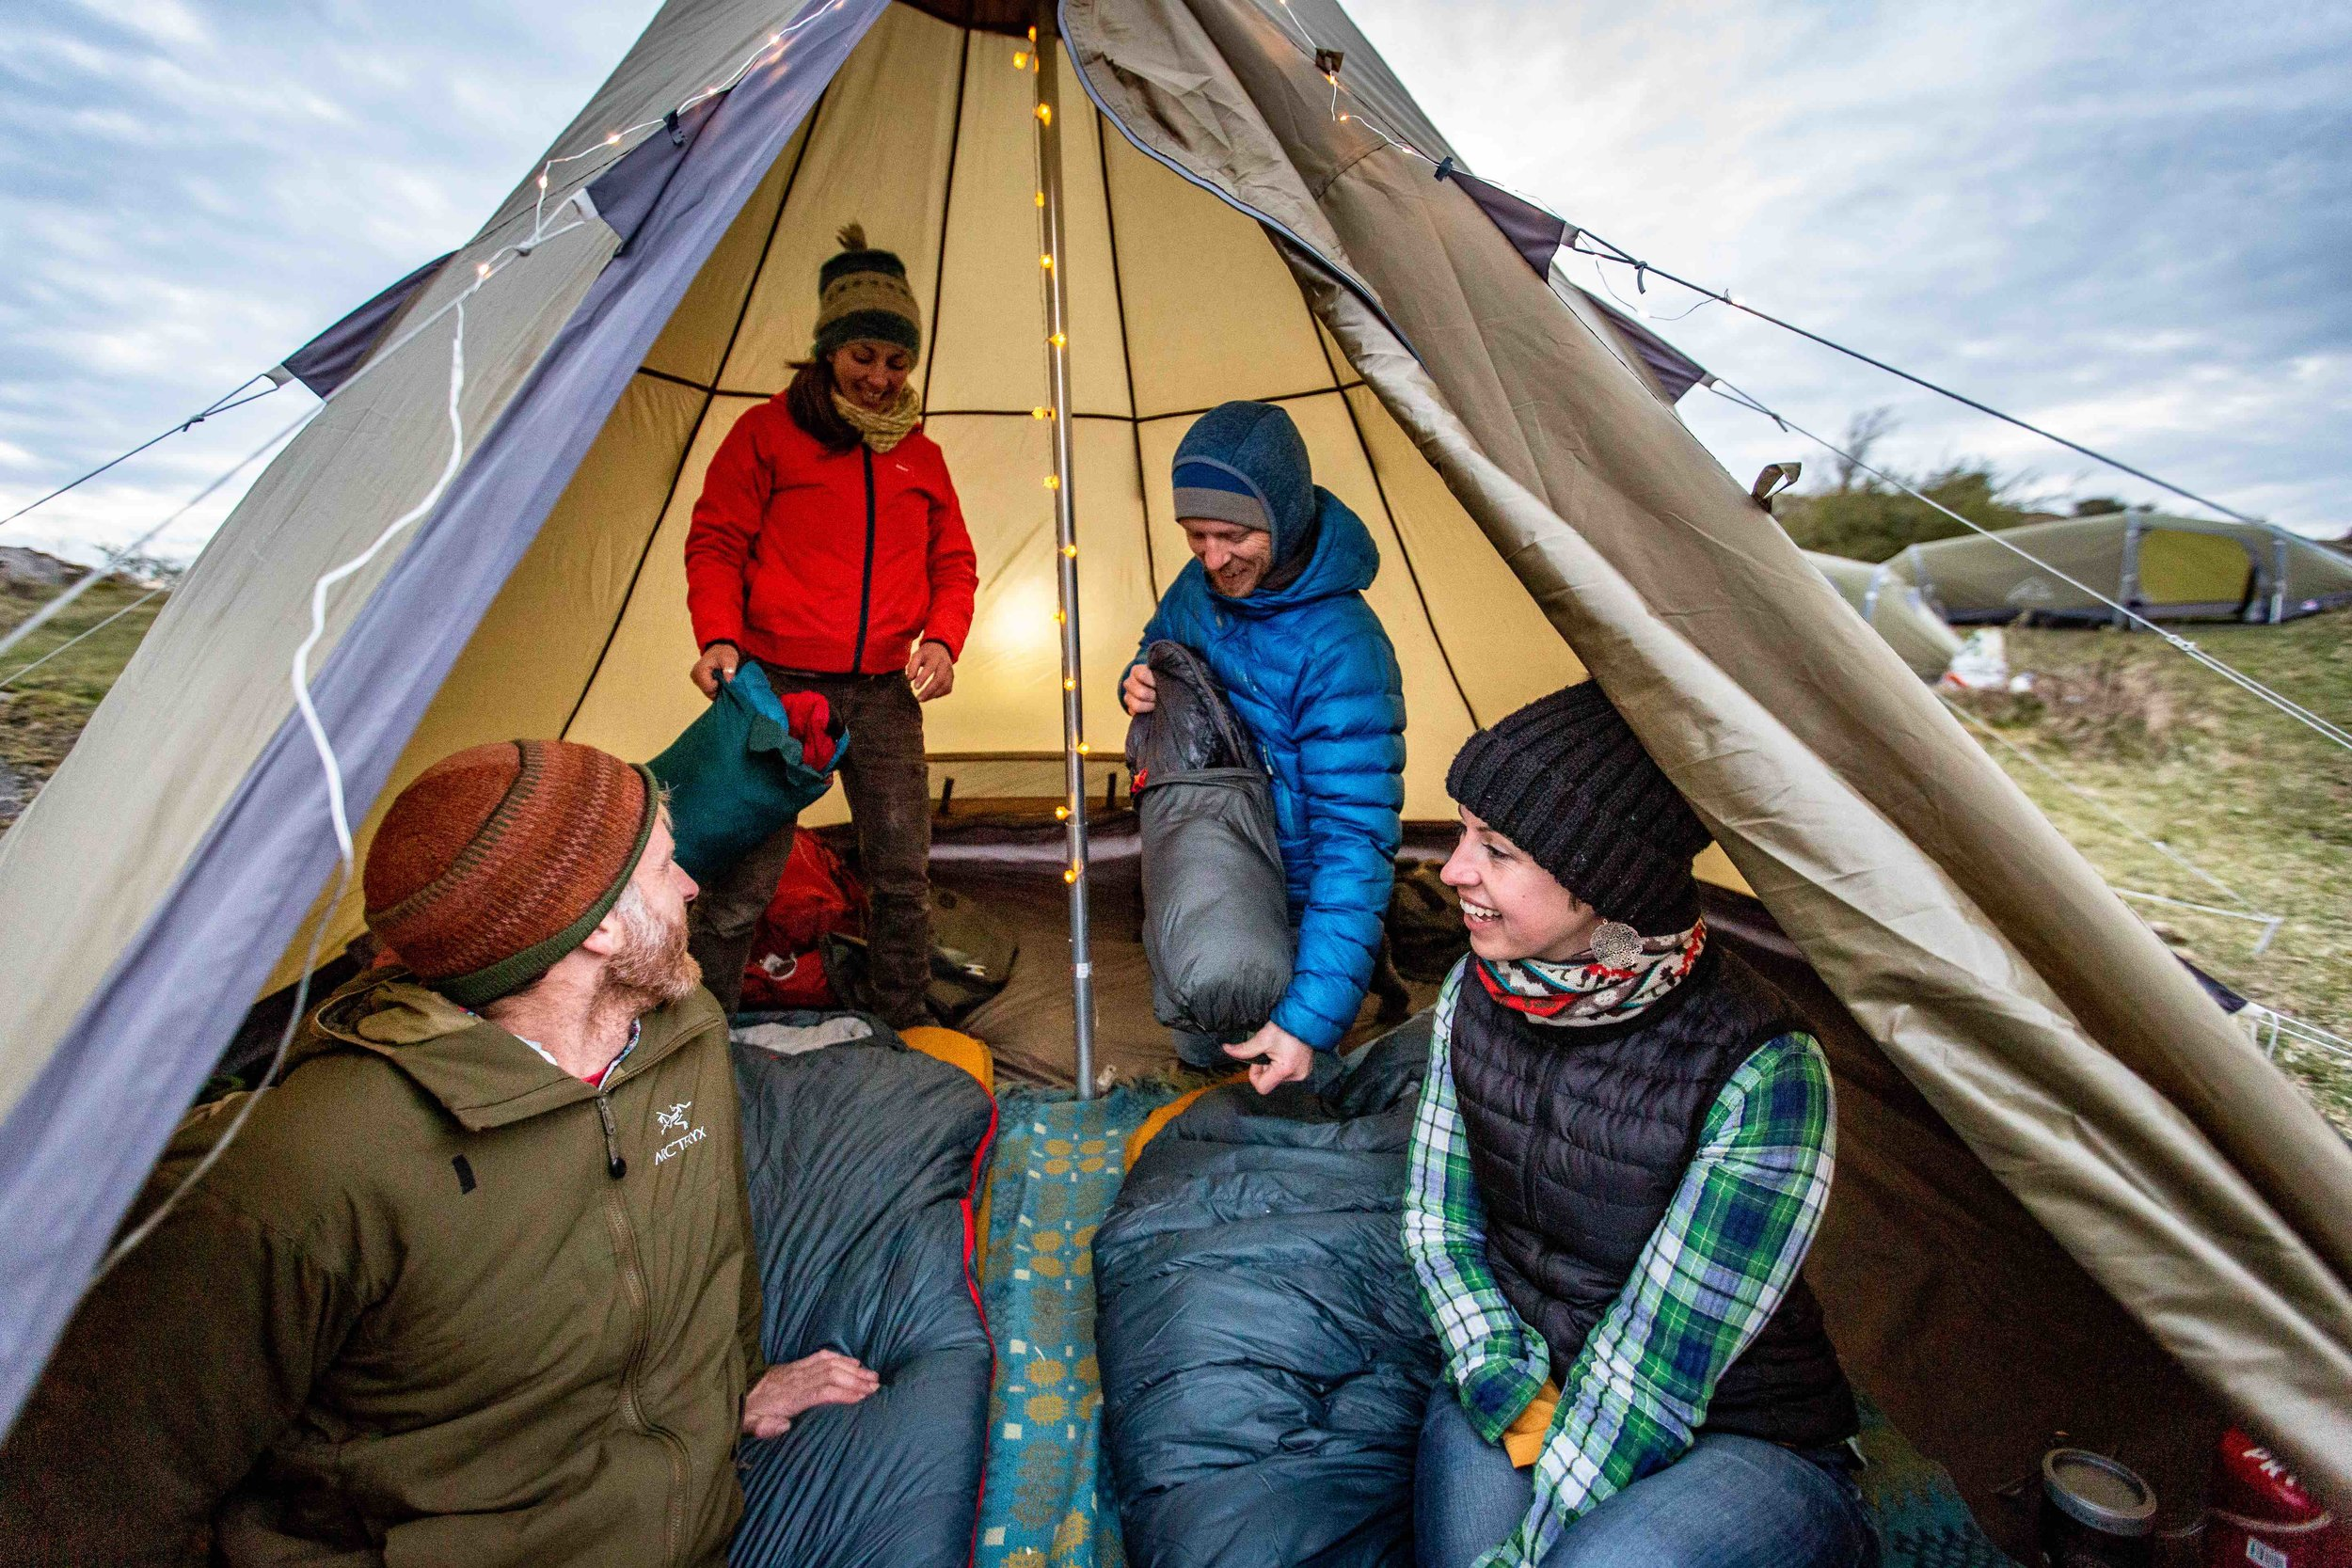 Group tent_web.jpg